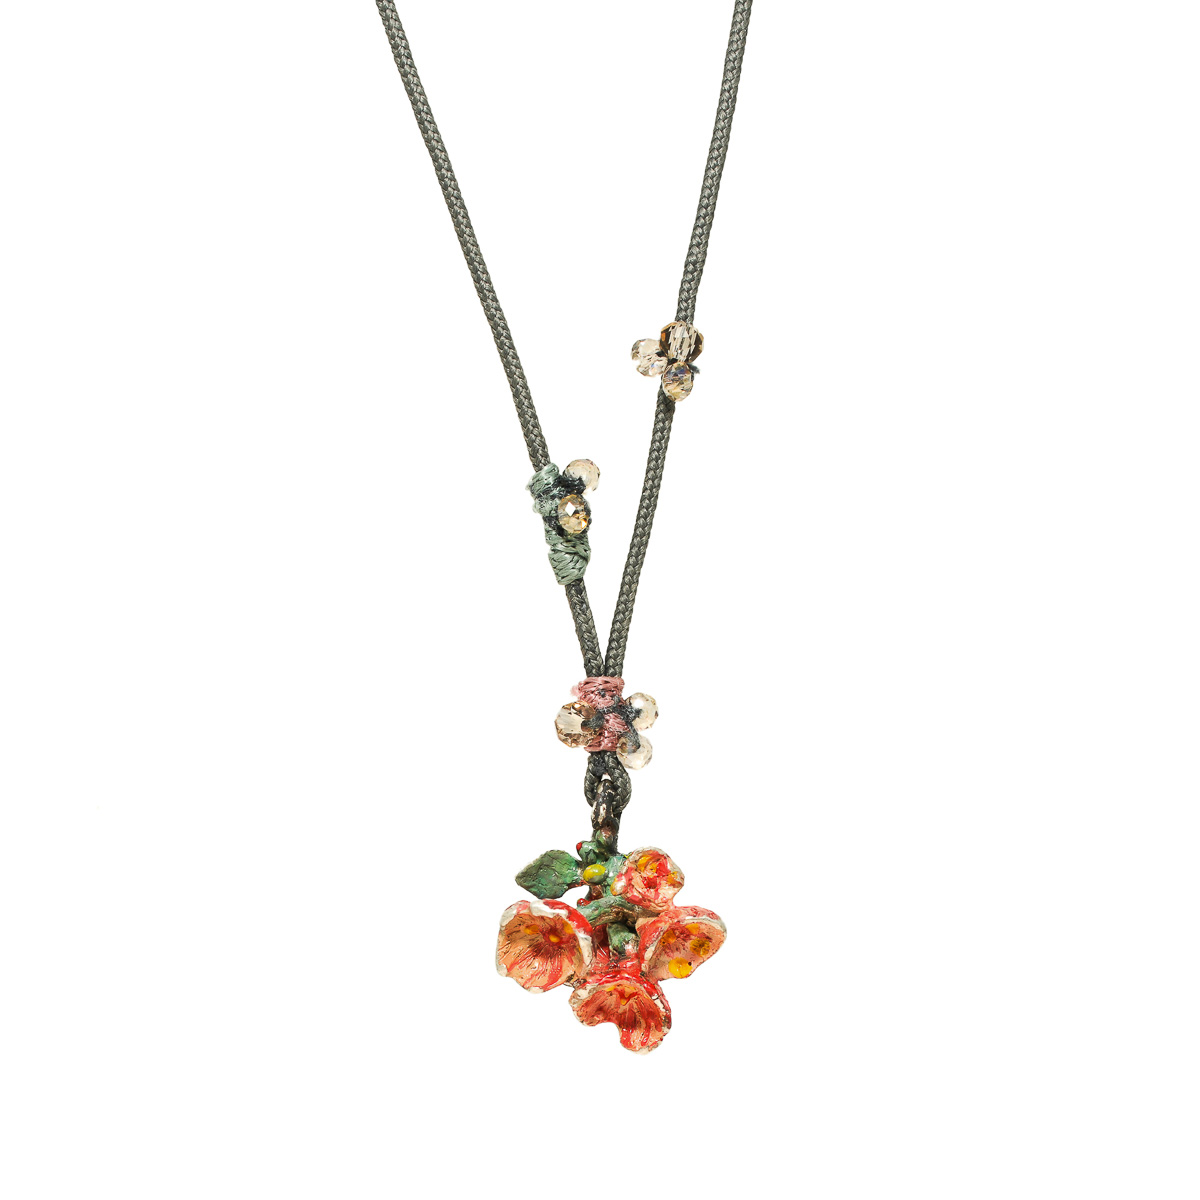 Flower bouquet necklace in sterling silver, colored with enamel paint. Design Katerina Glinou, Bead A Boo jewelry